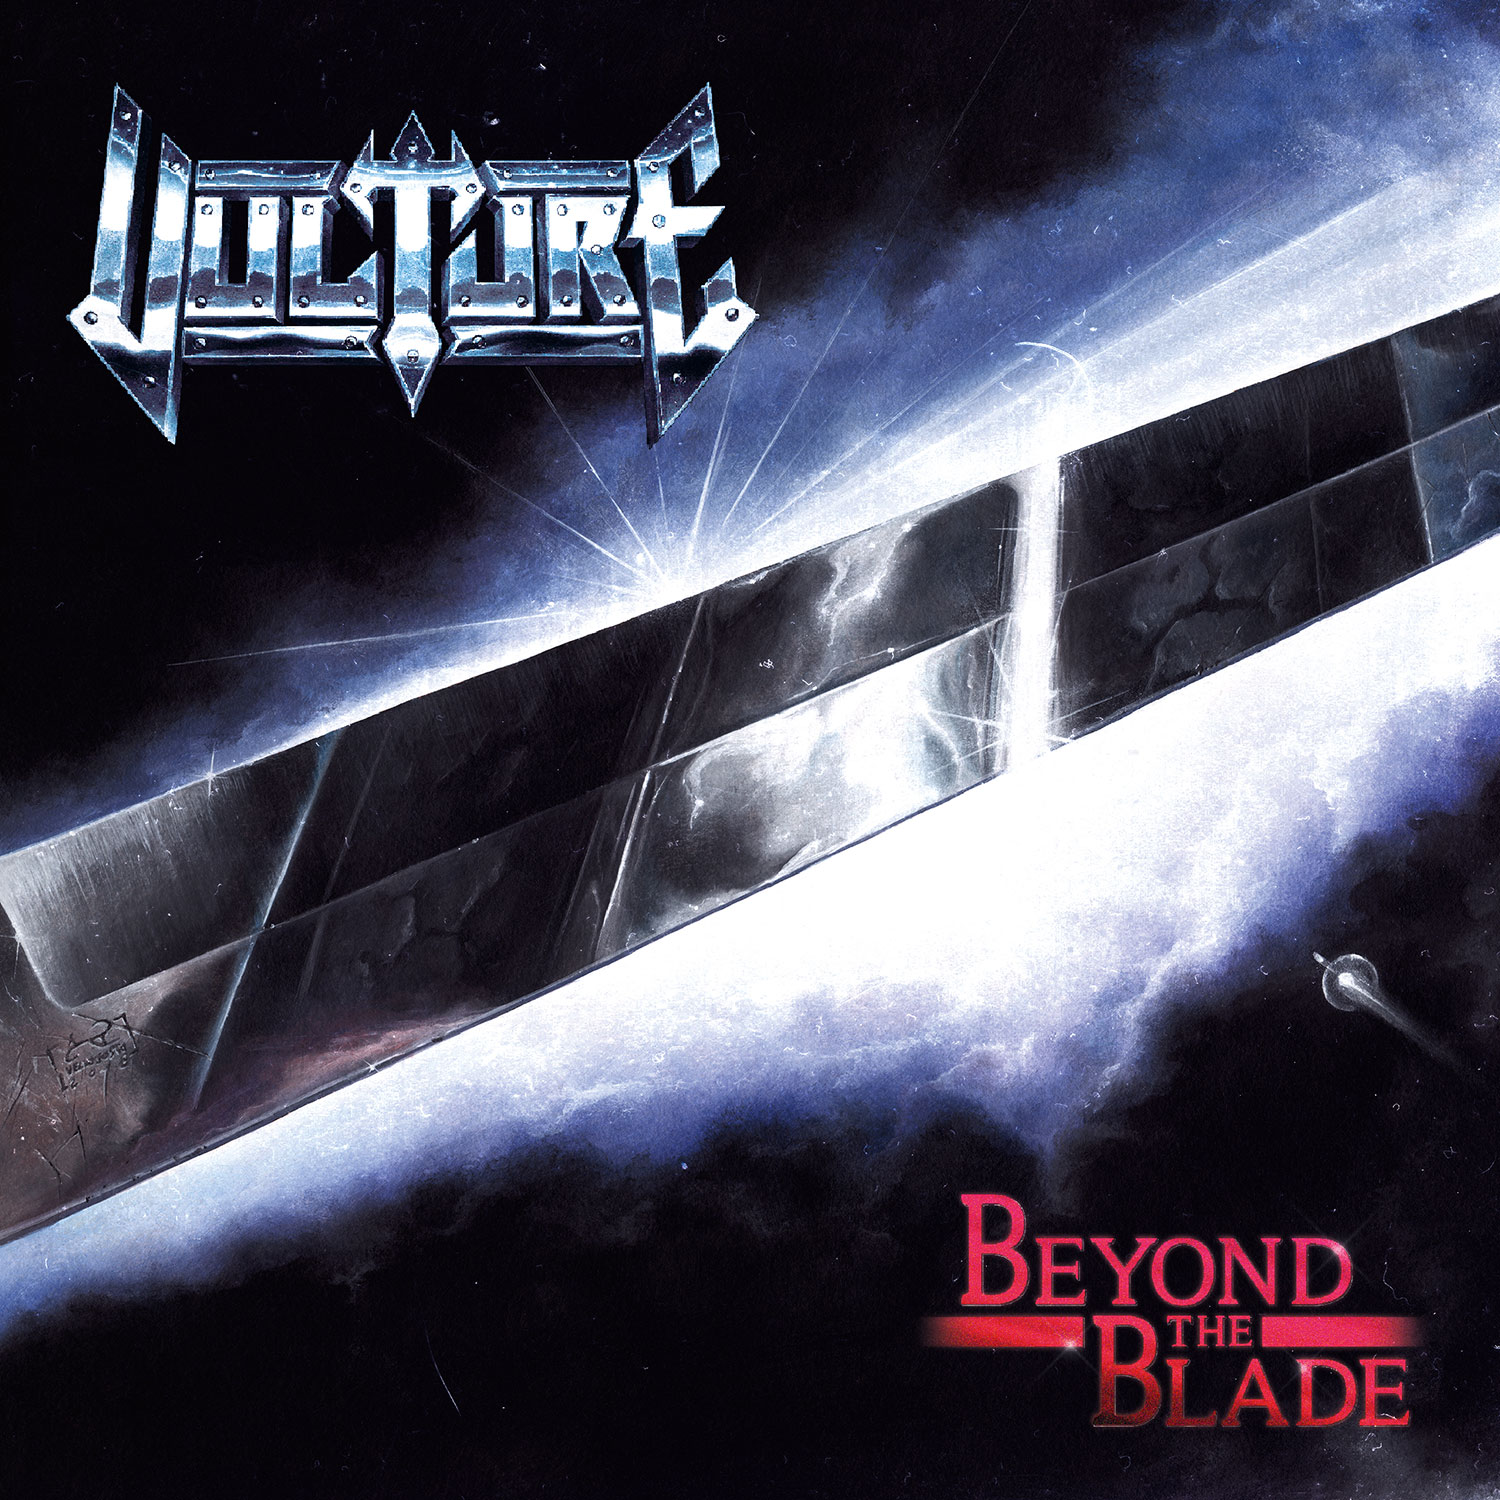 Beyond the Blade (7-Inch)